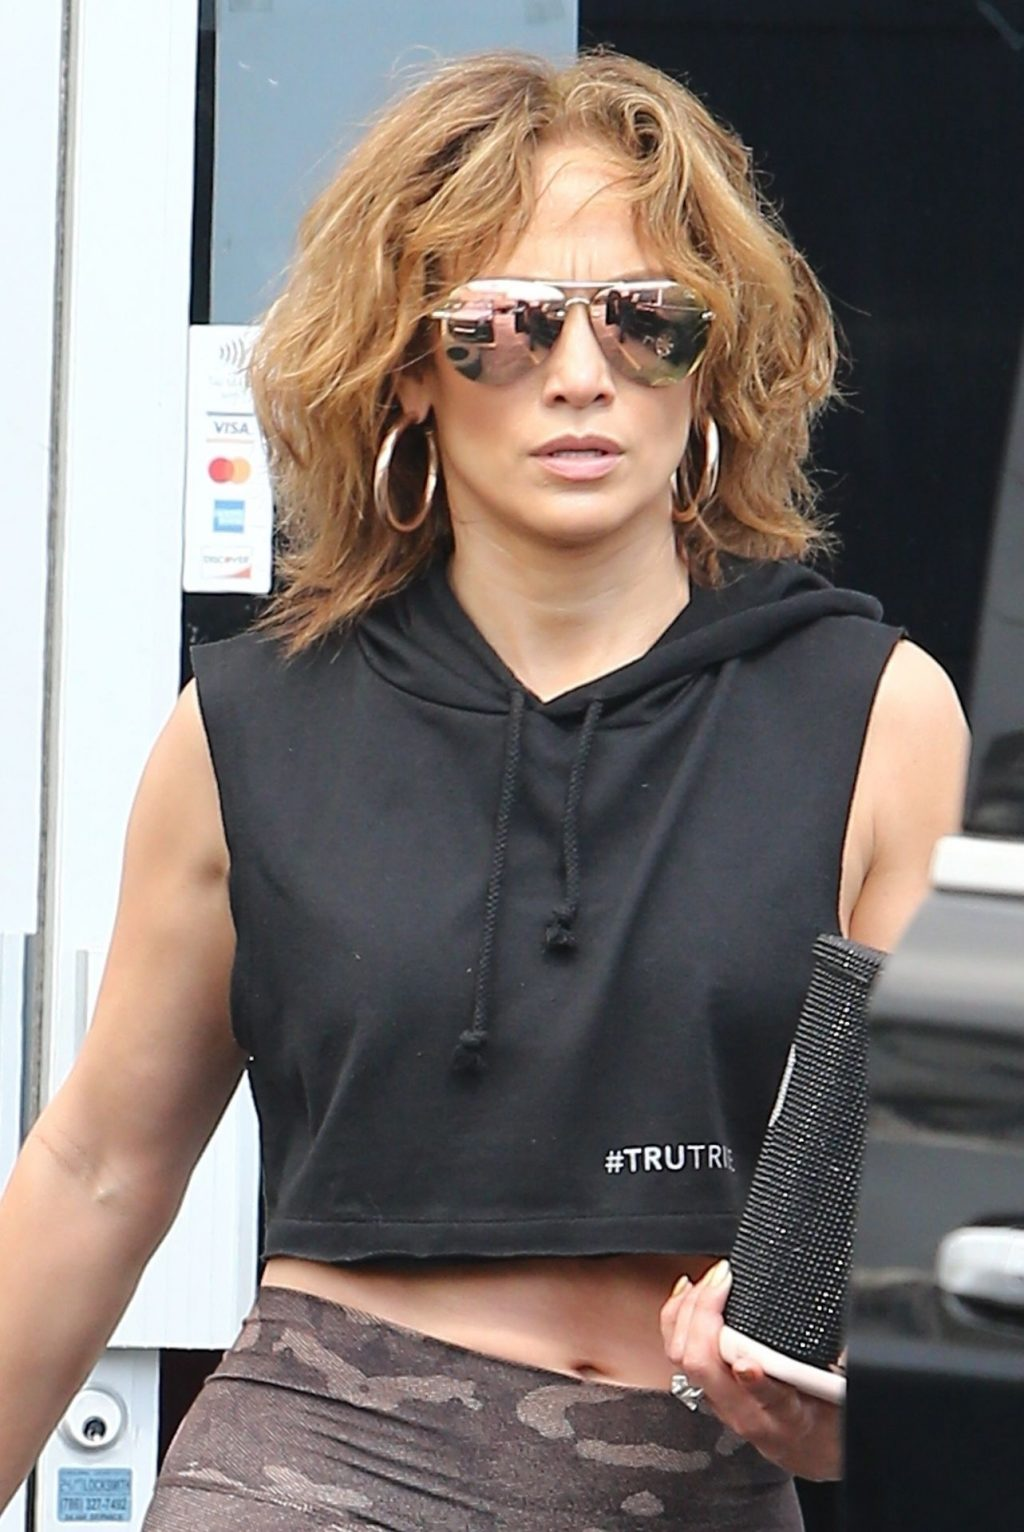 Jennifer Lopez Sexy The Fappening Blog 45 1024x1532 - Jennifer Lopez Shows That Rock Hard Abs Don't Just Happen as She Dutifully Hits the Gym in Miami (48 Photos)